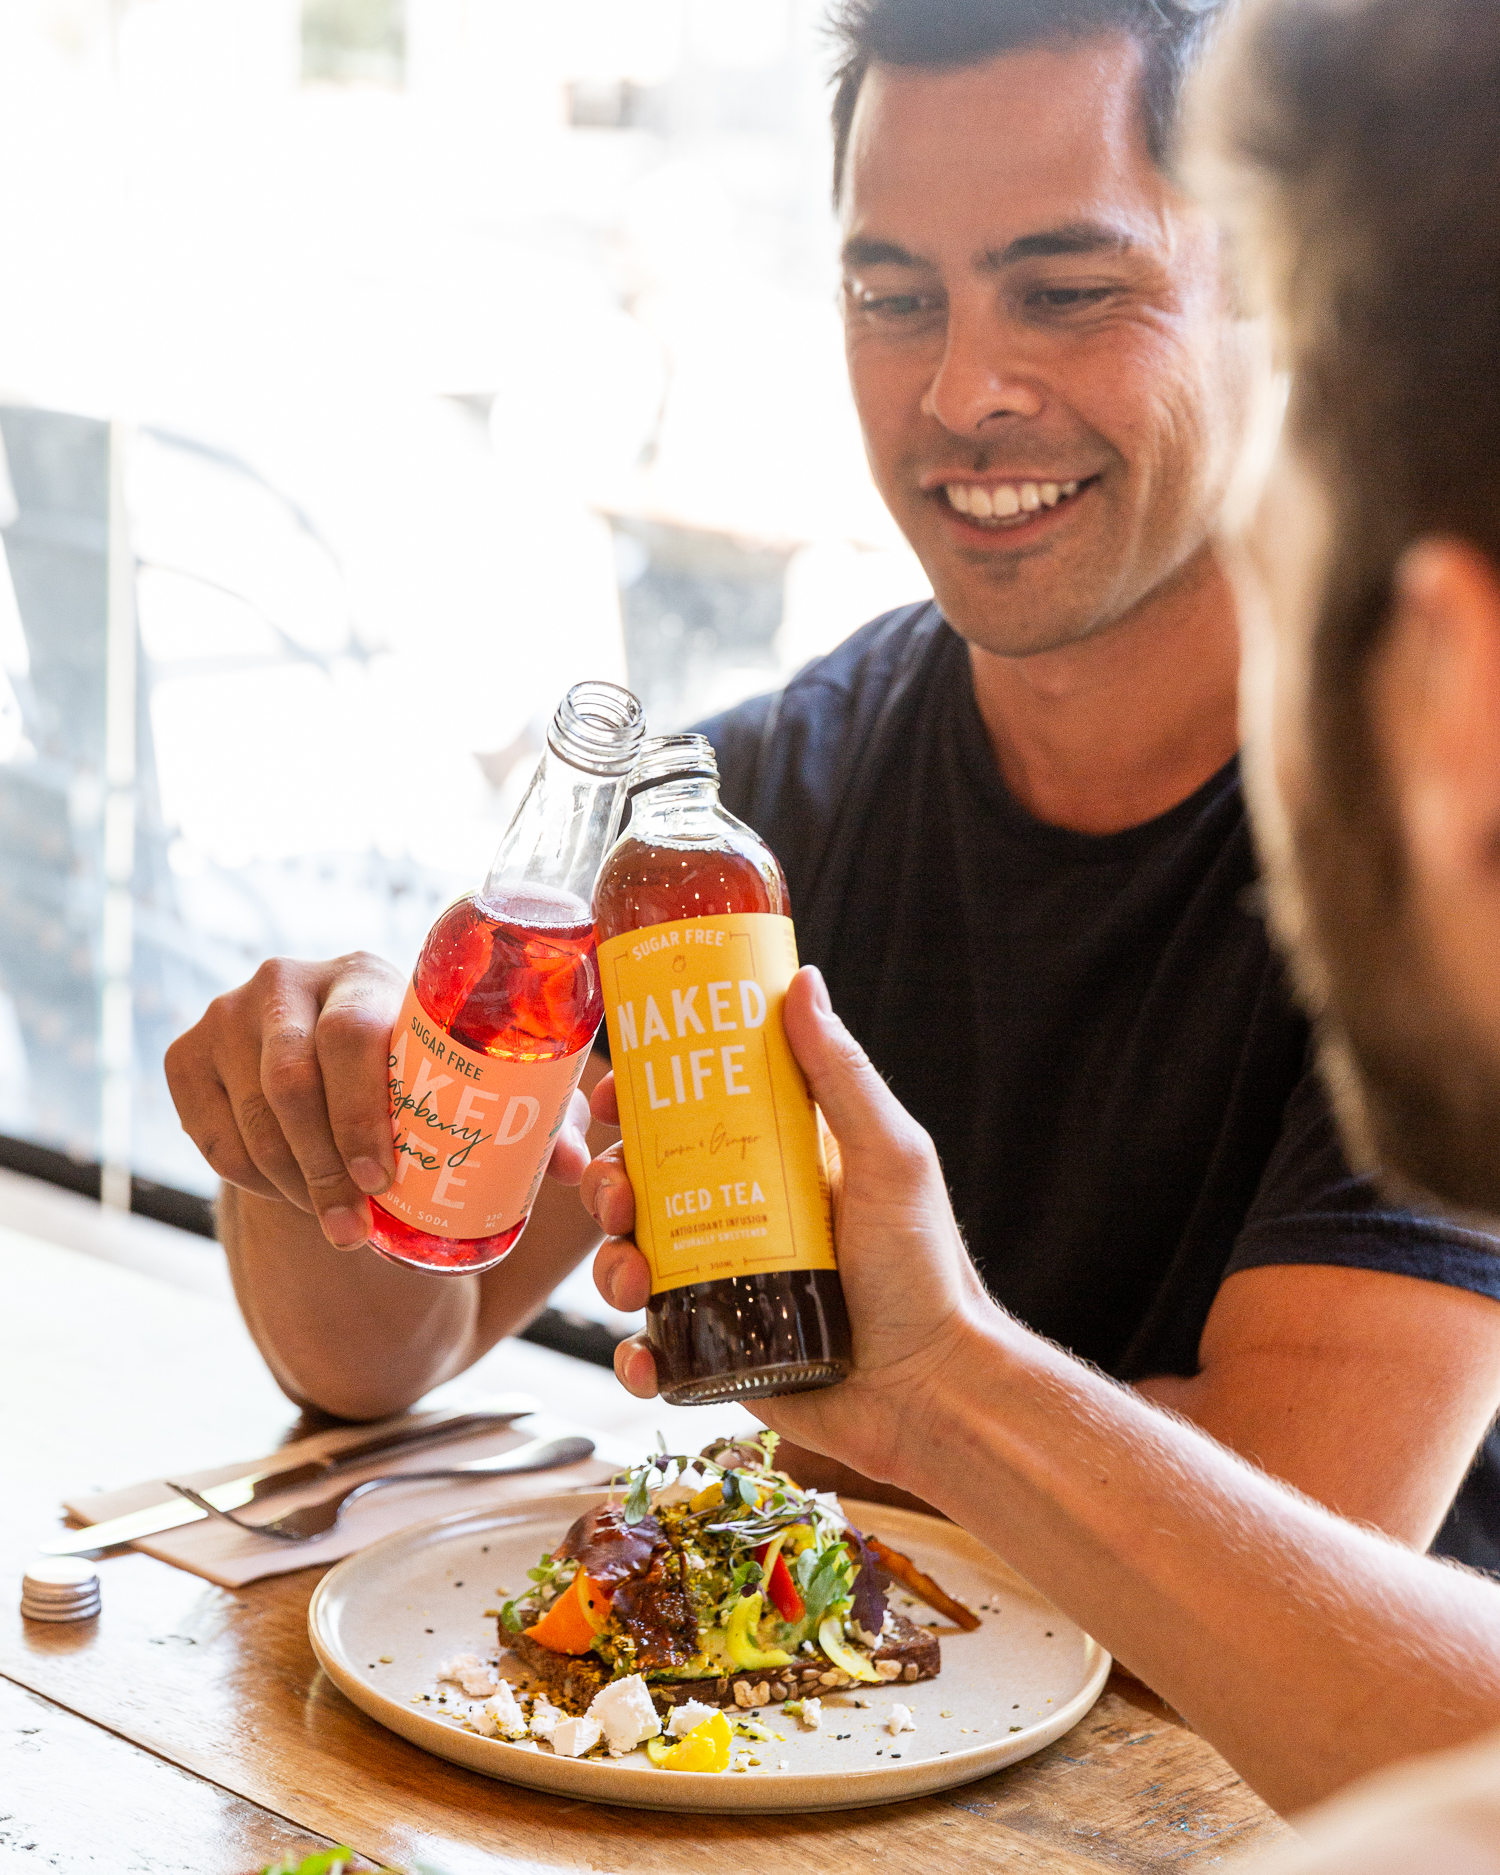 Onyapreneur: David Andrew, Founder and CEO Of Naked Life Beverages